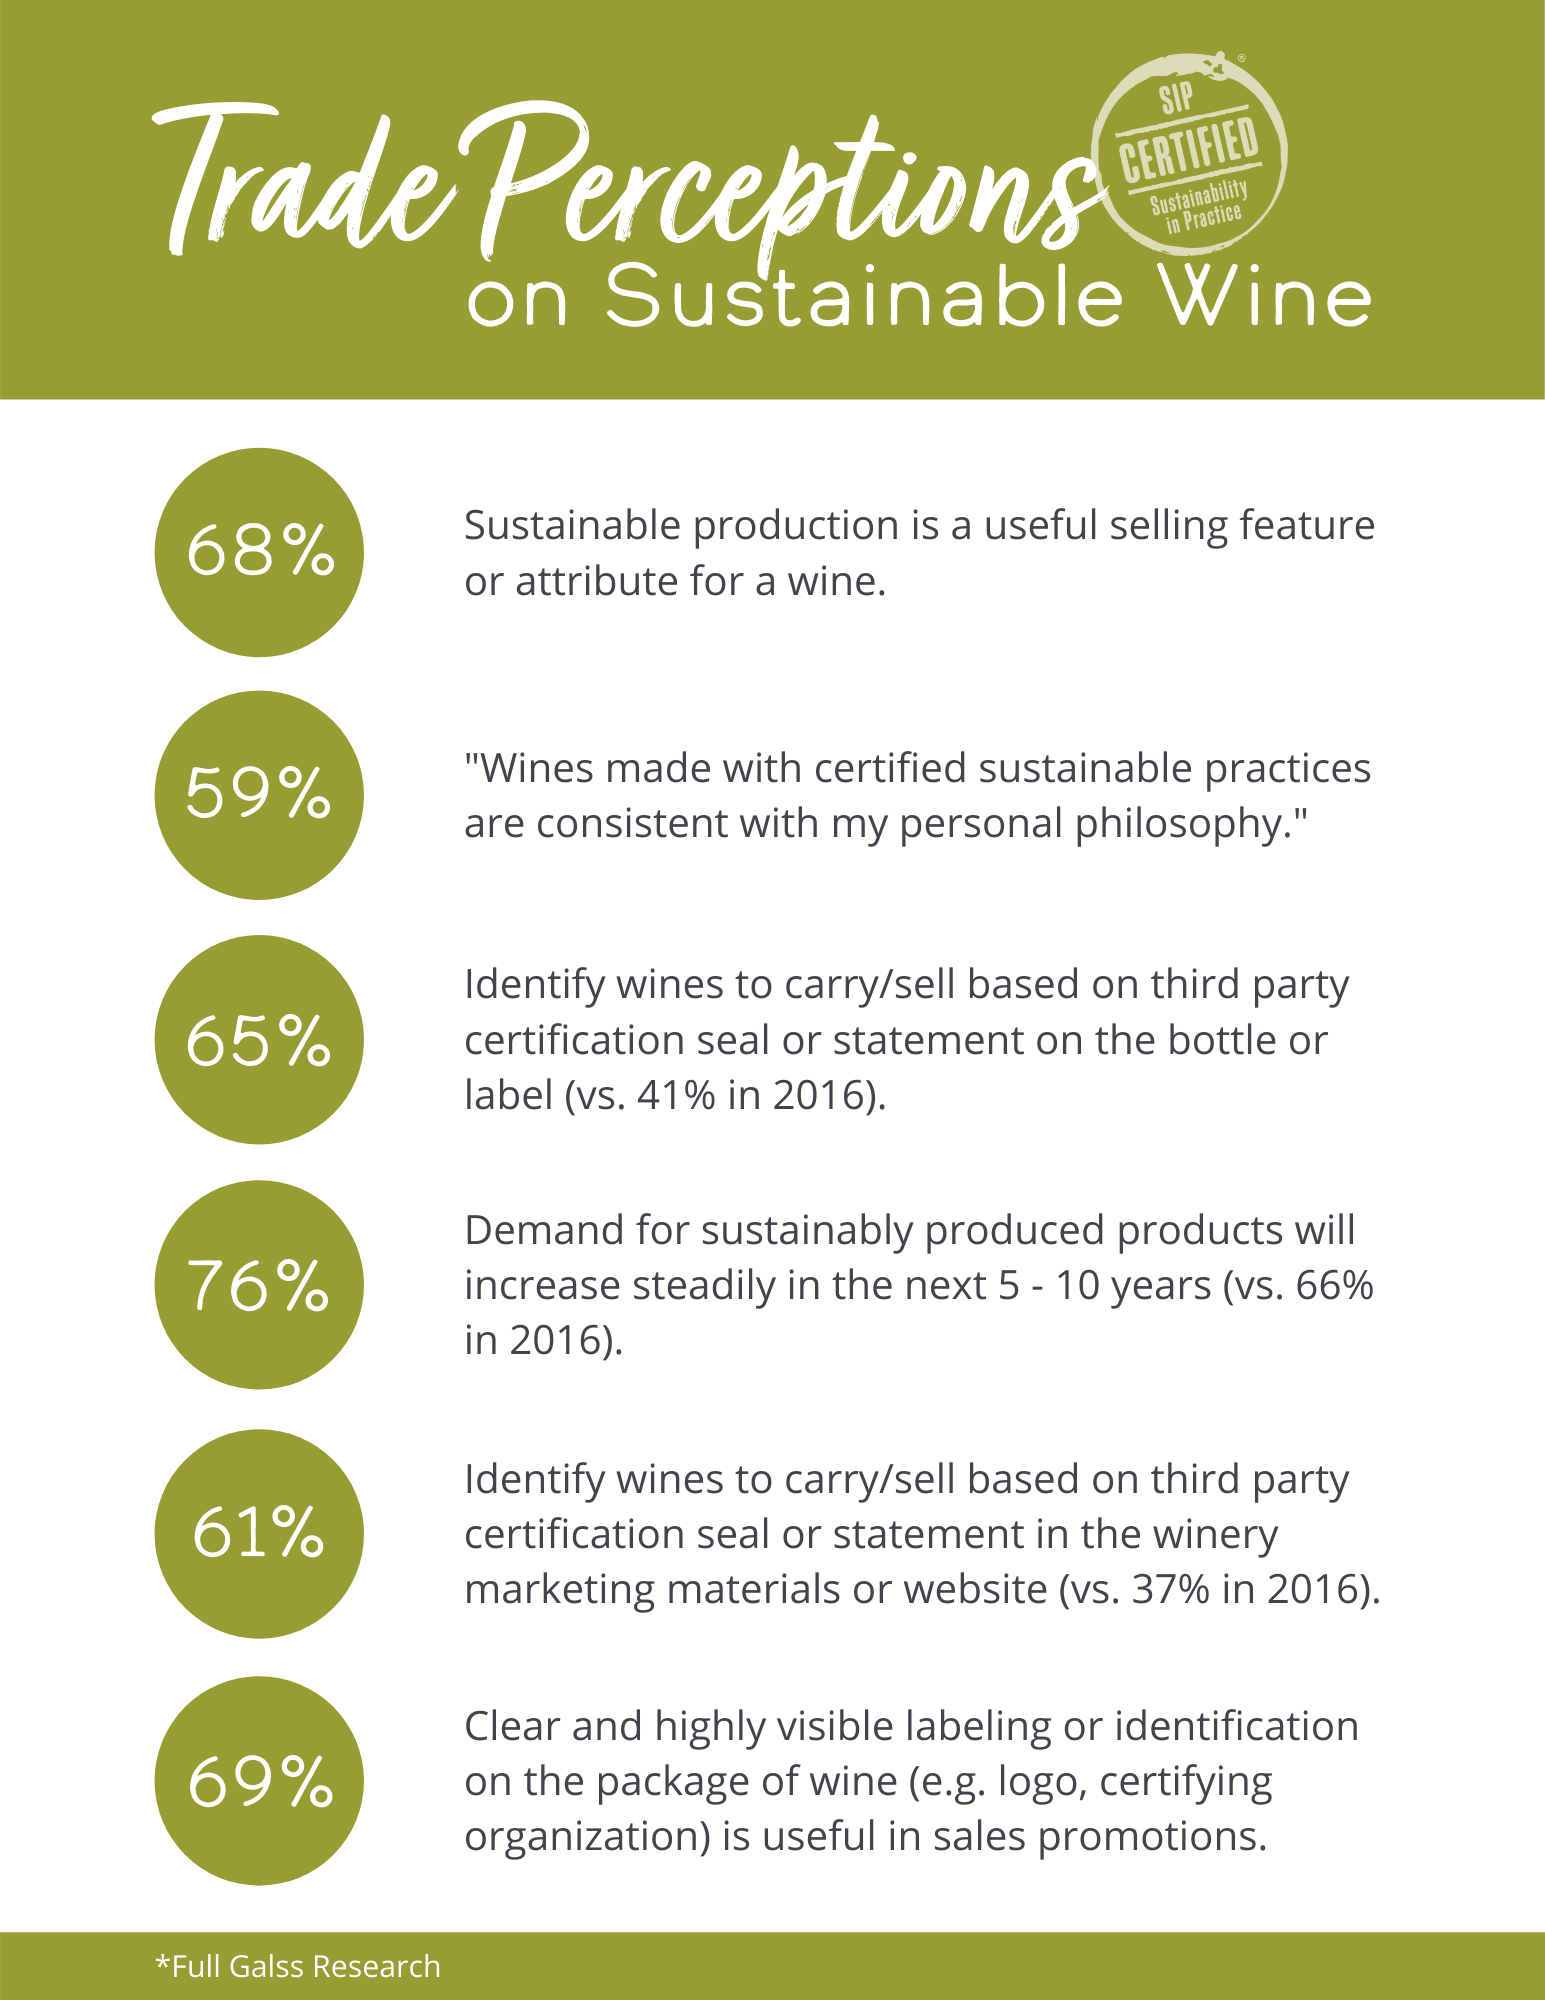 Research Shows the Trade Want Sustainable Wines